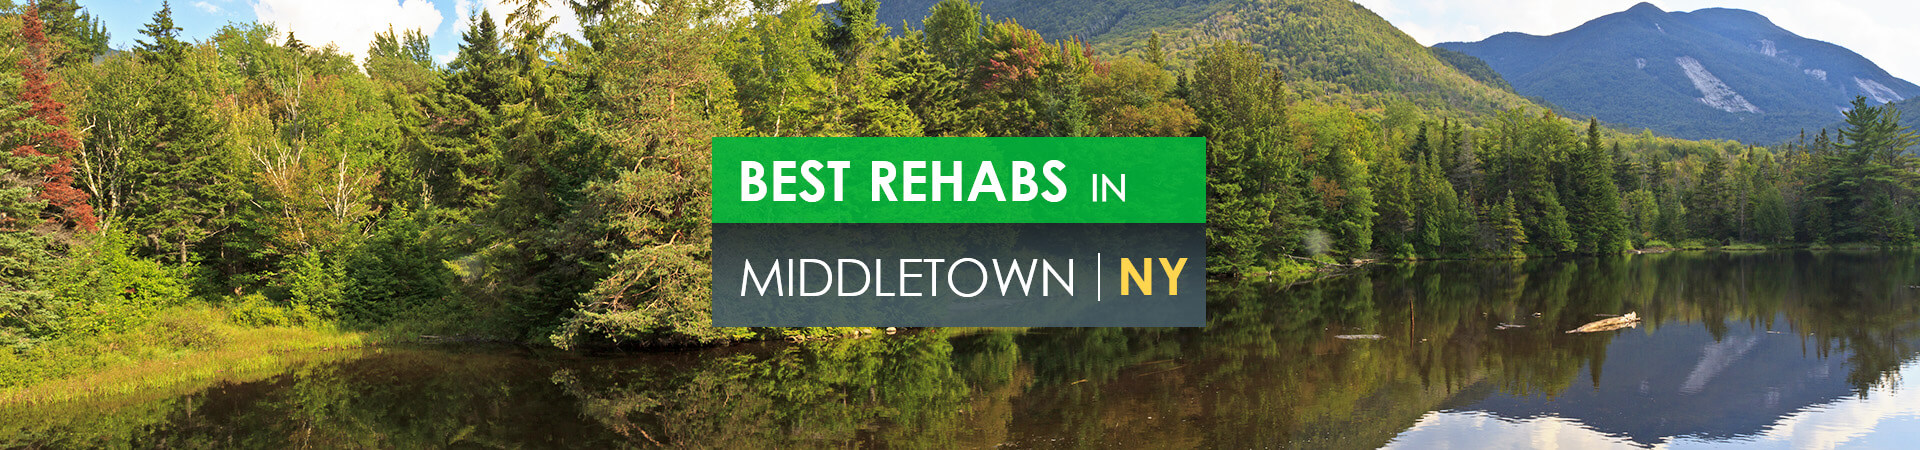 Best rehabs in Middletown, NY